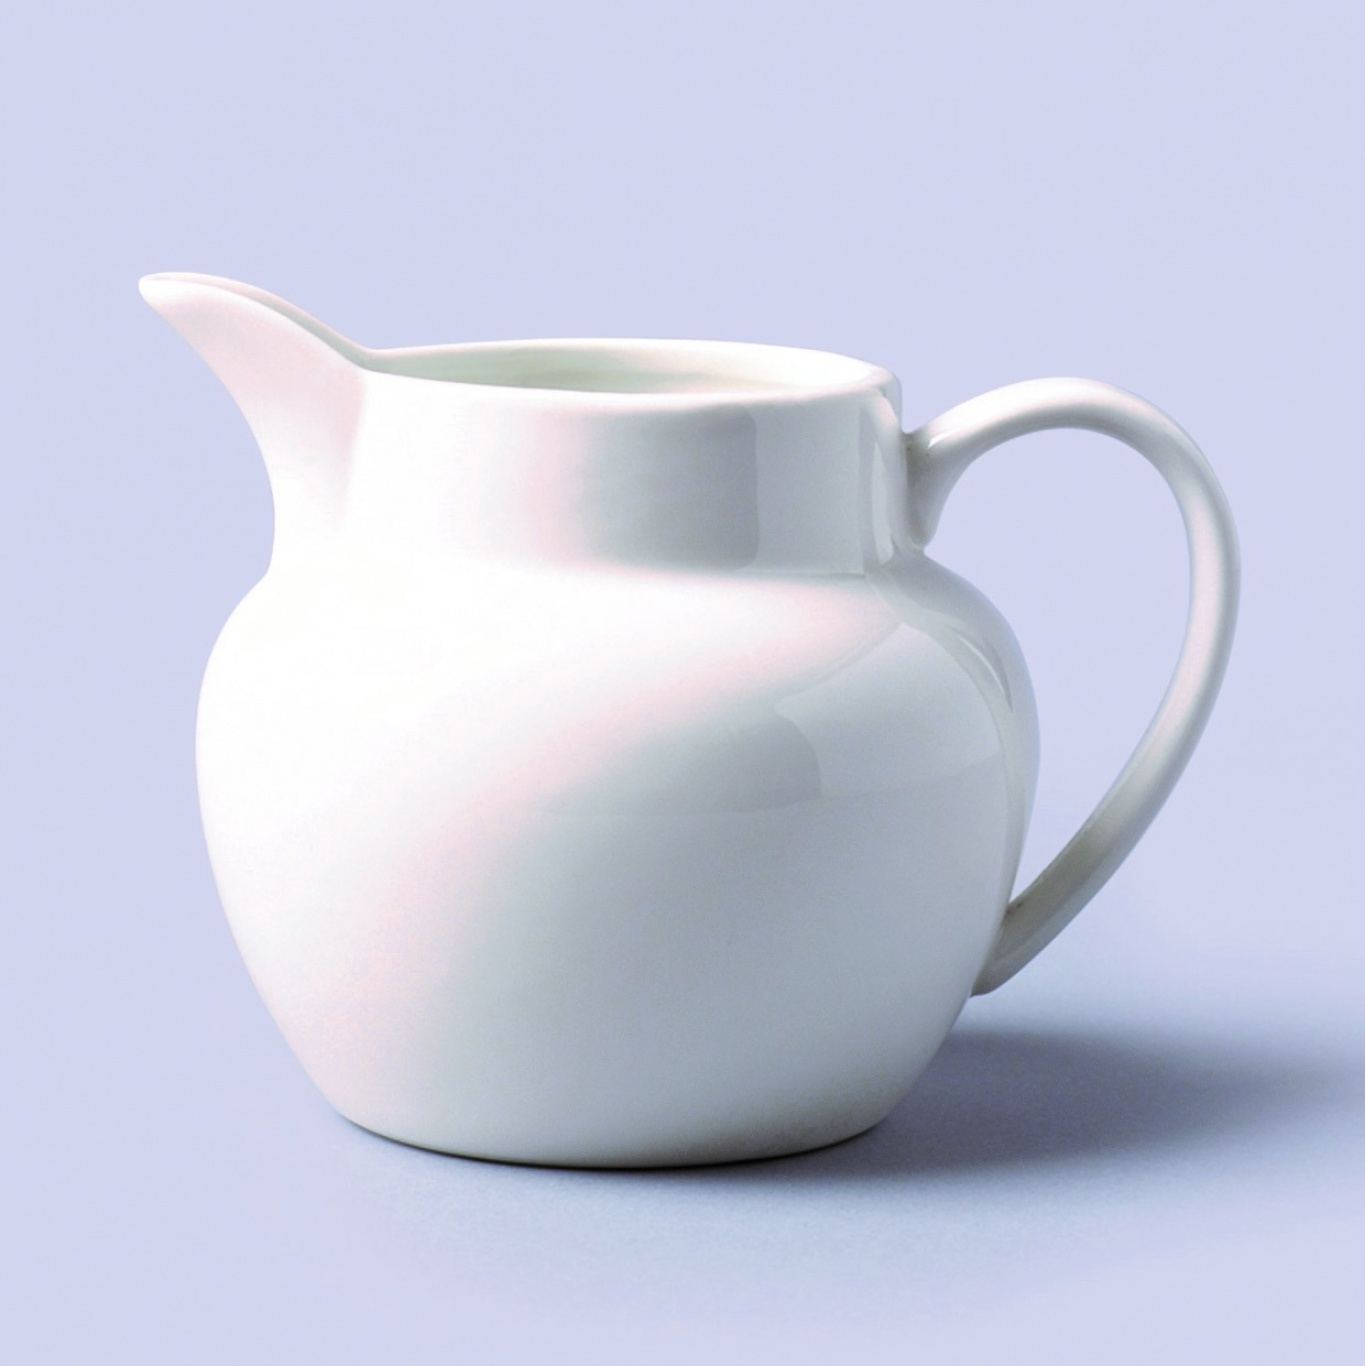 Image of Traditional Bellied Milk Jug 0.75 Pint